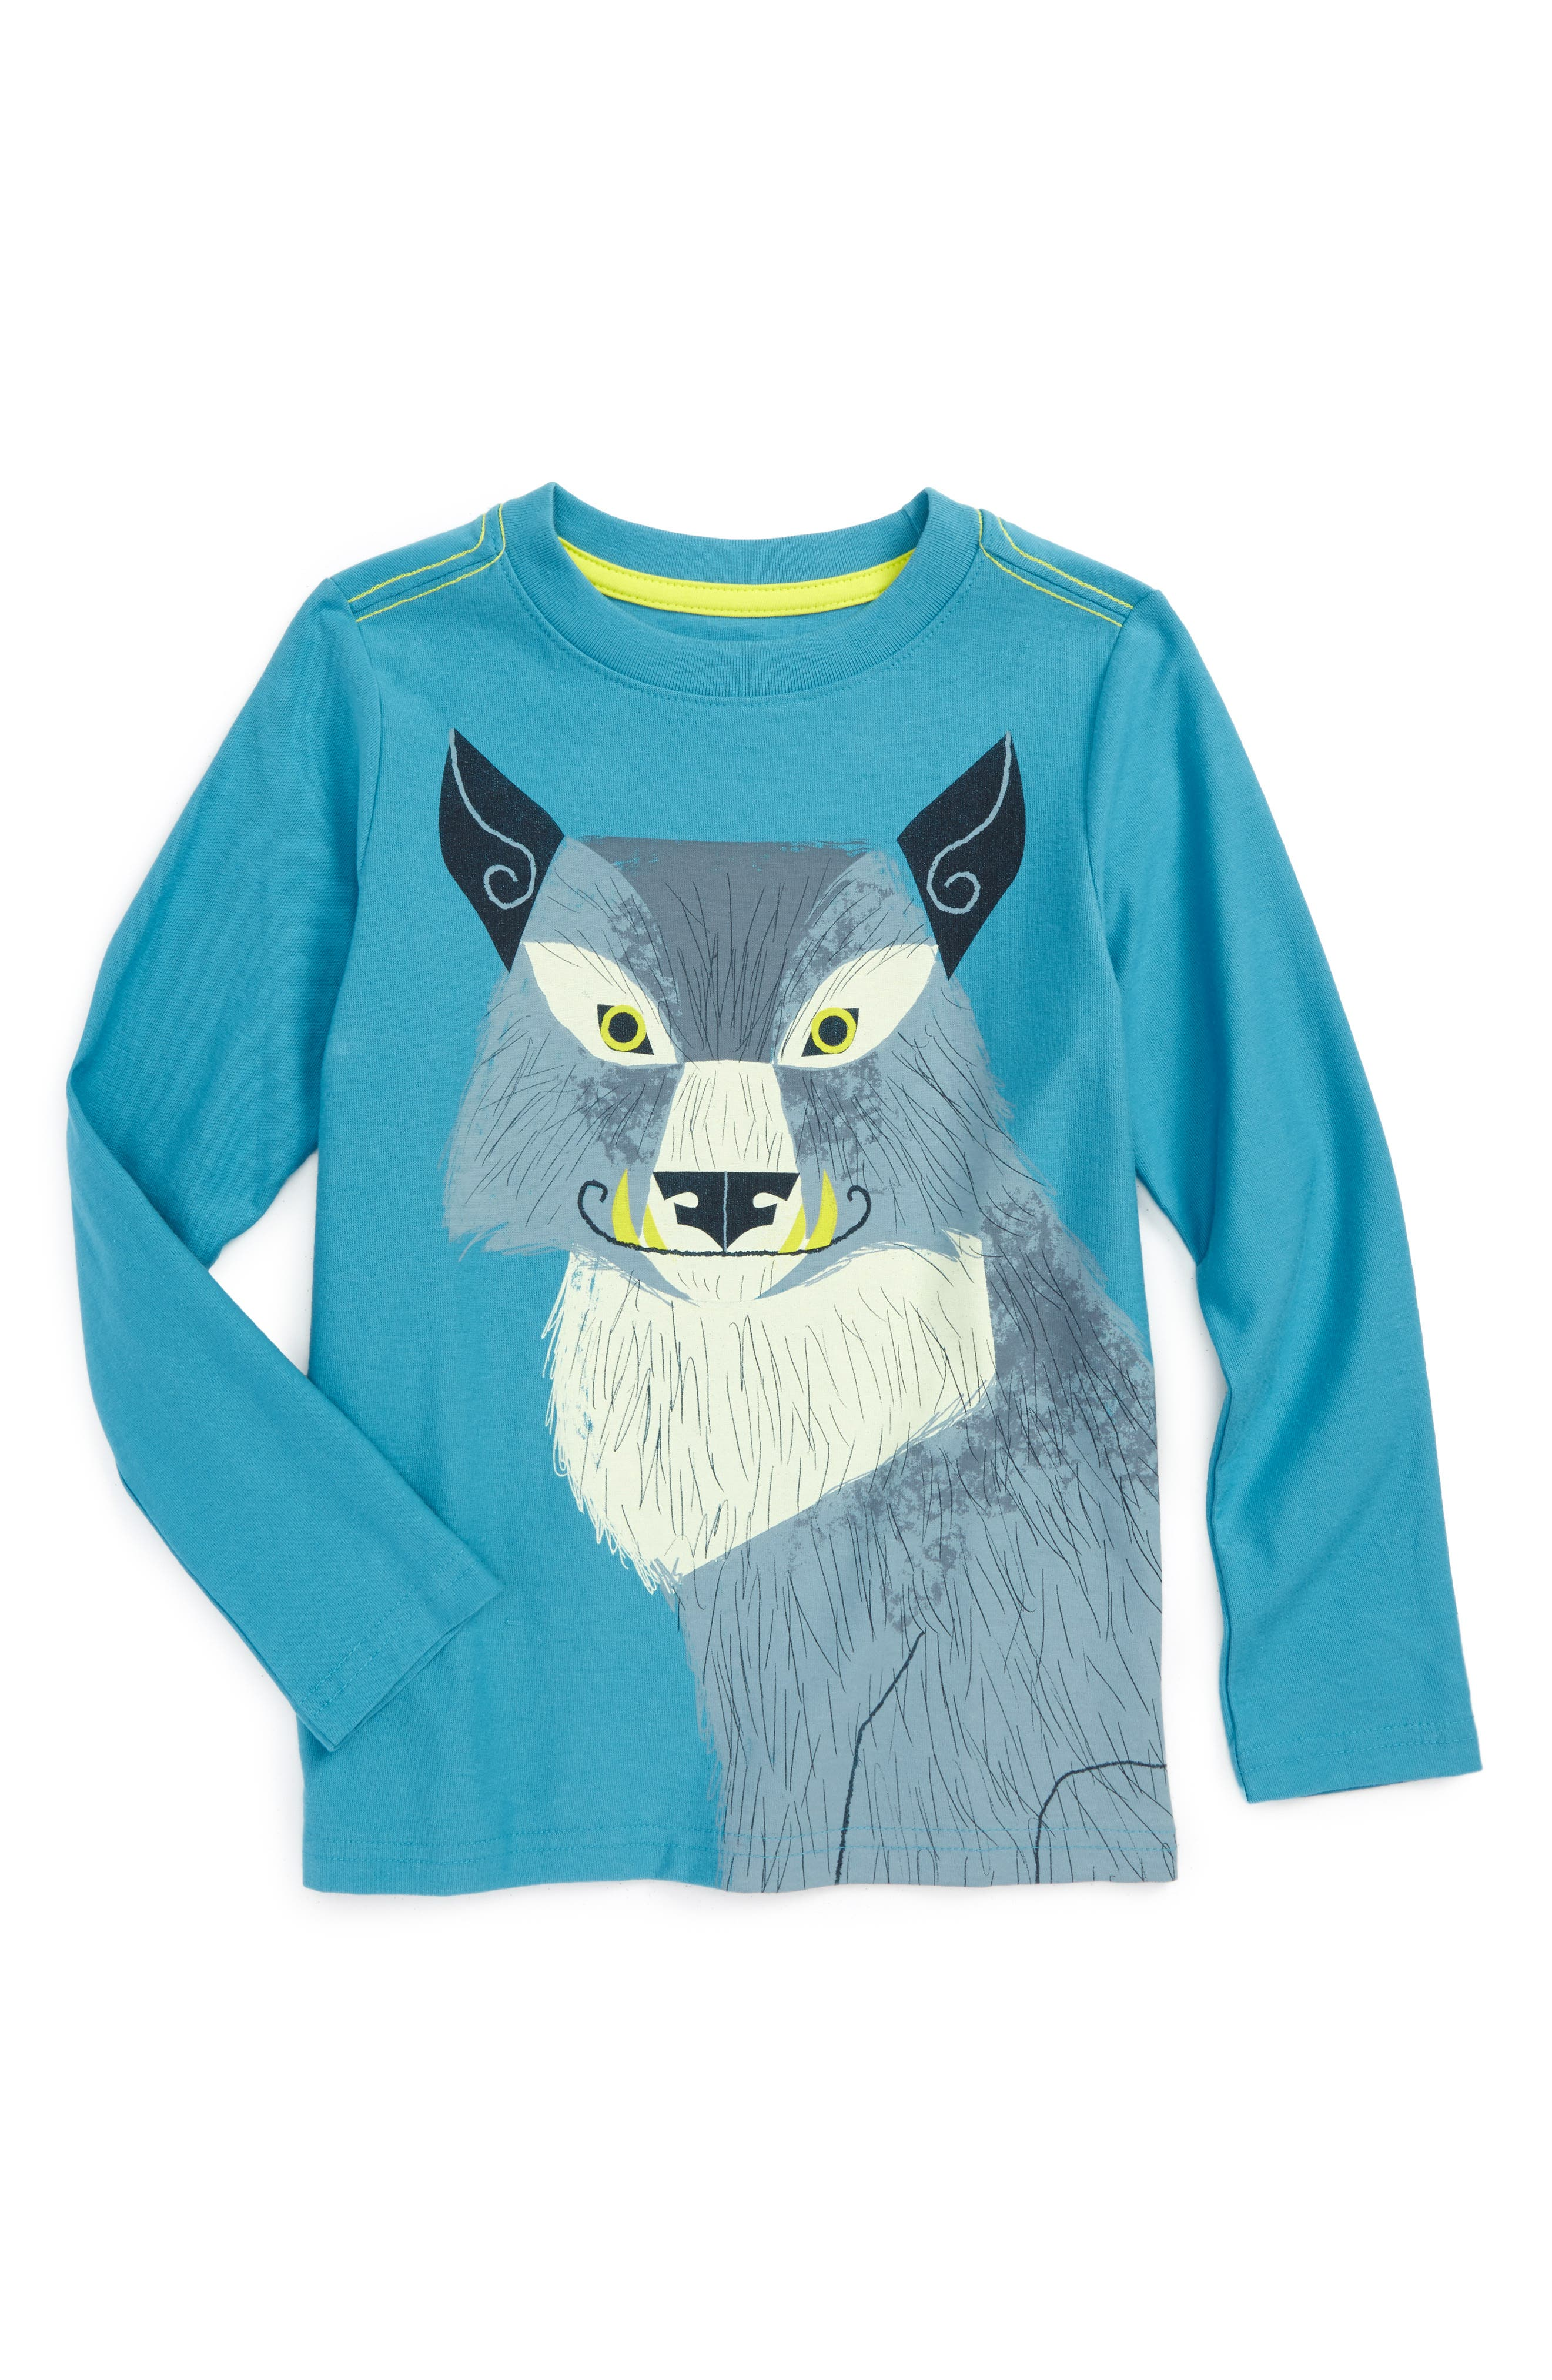 Main Image - Tea Collection Wulver Graphic T-Shirt (Toddler Boys & Little Boys)